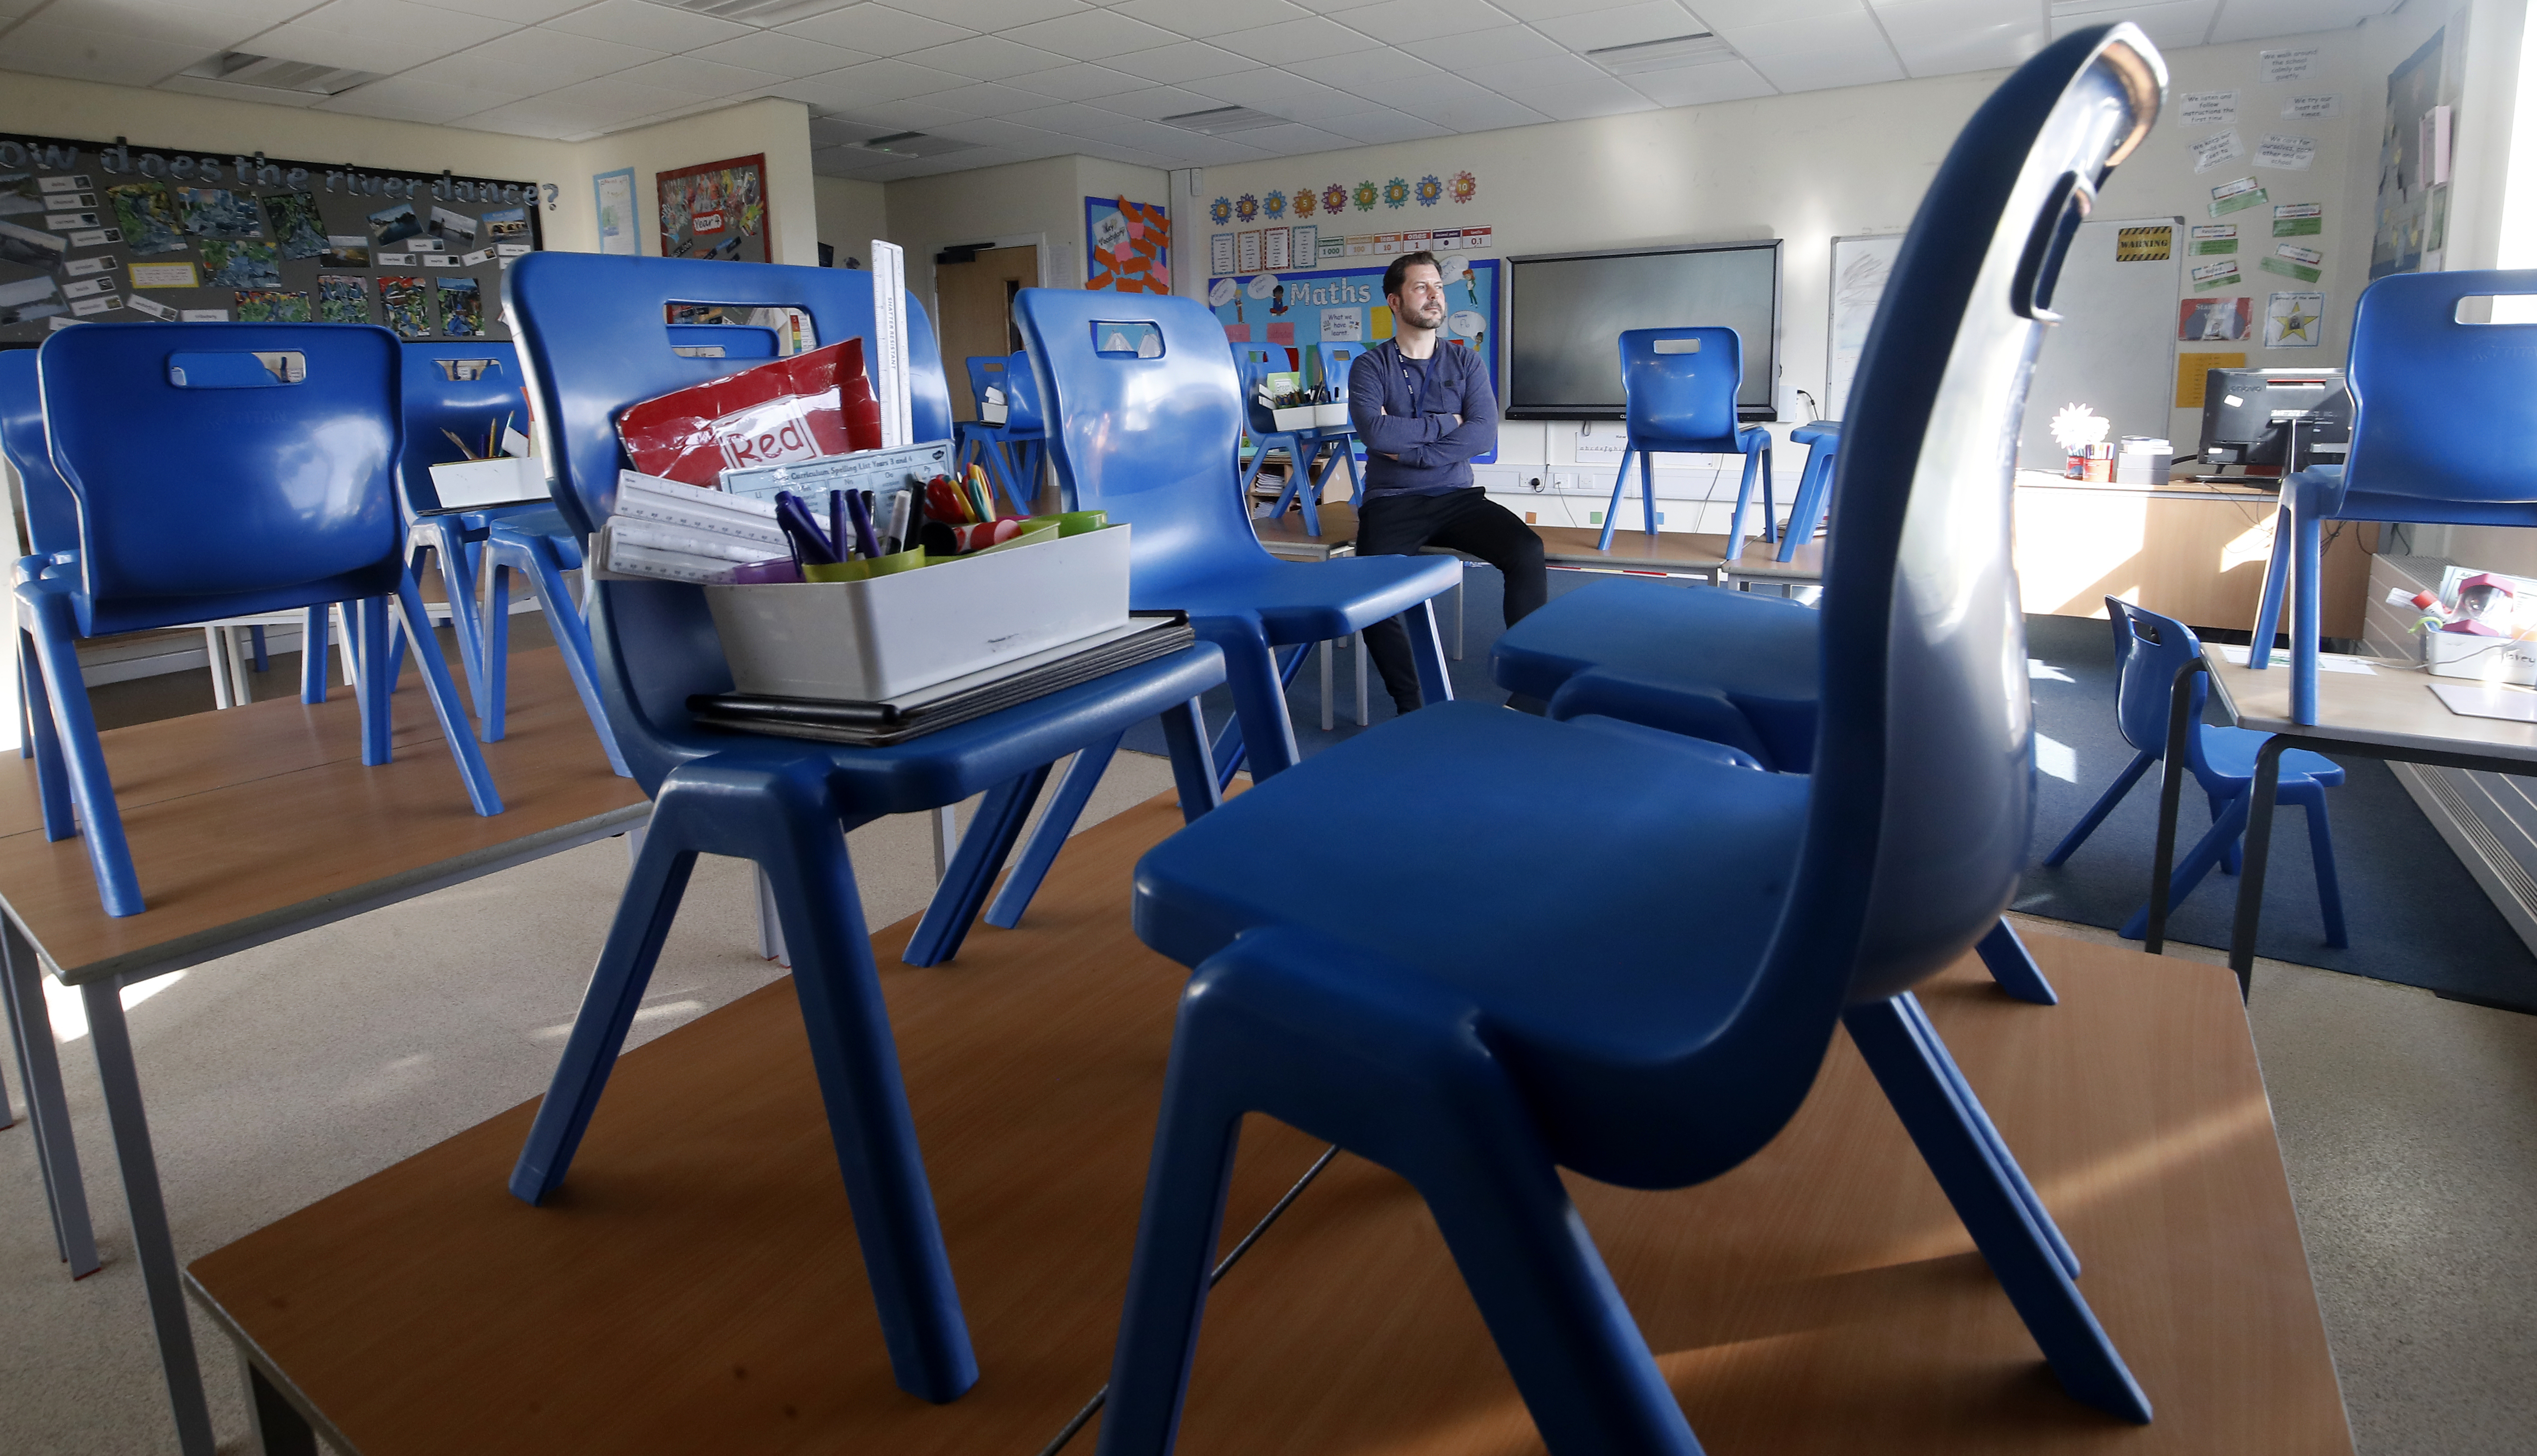 Simon Cotterill, Head Teacher of Manor Park School and Nursery in Knutsford Cheshire, sits in an empty classroom, the day after Prime Minister Boris Johnson put the UK in lockdown to help curb the spread of the coronavirus.